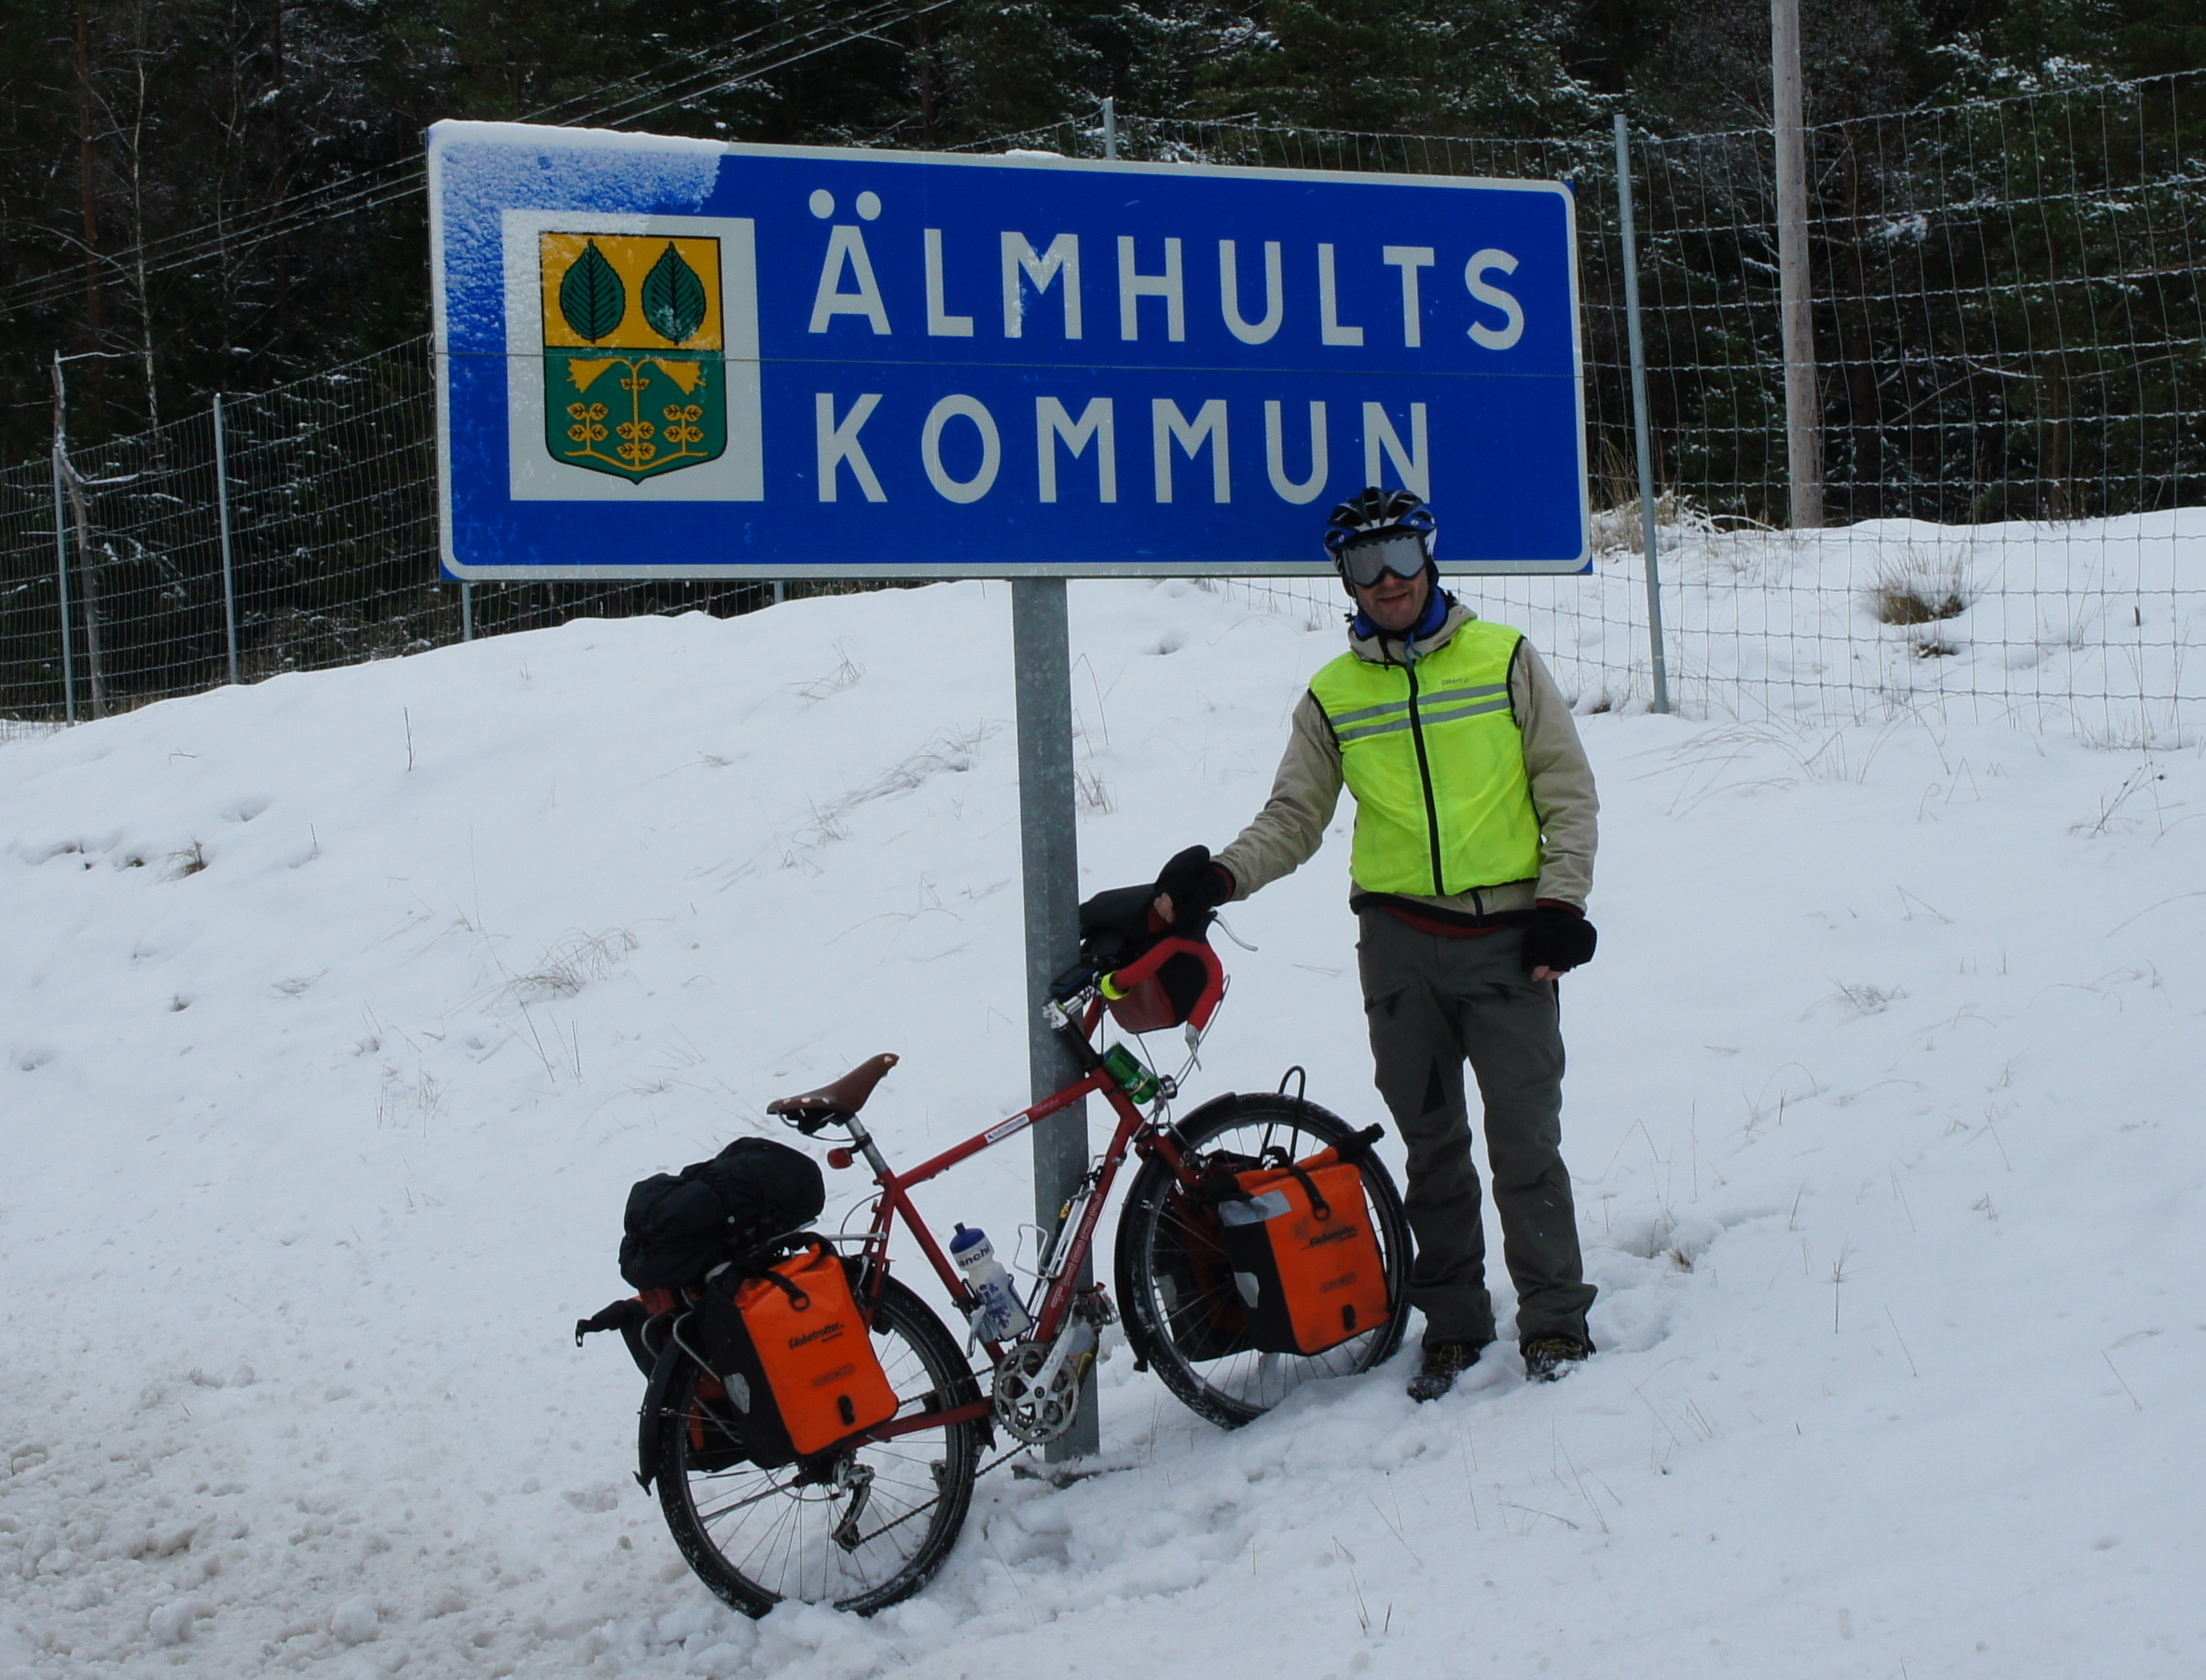 Finally arrived in Älmhult